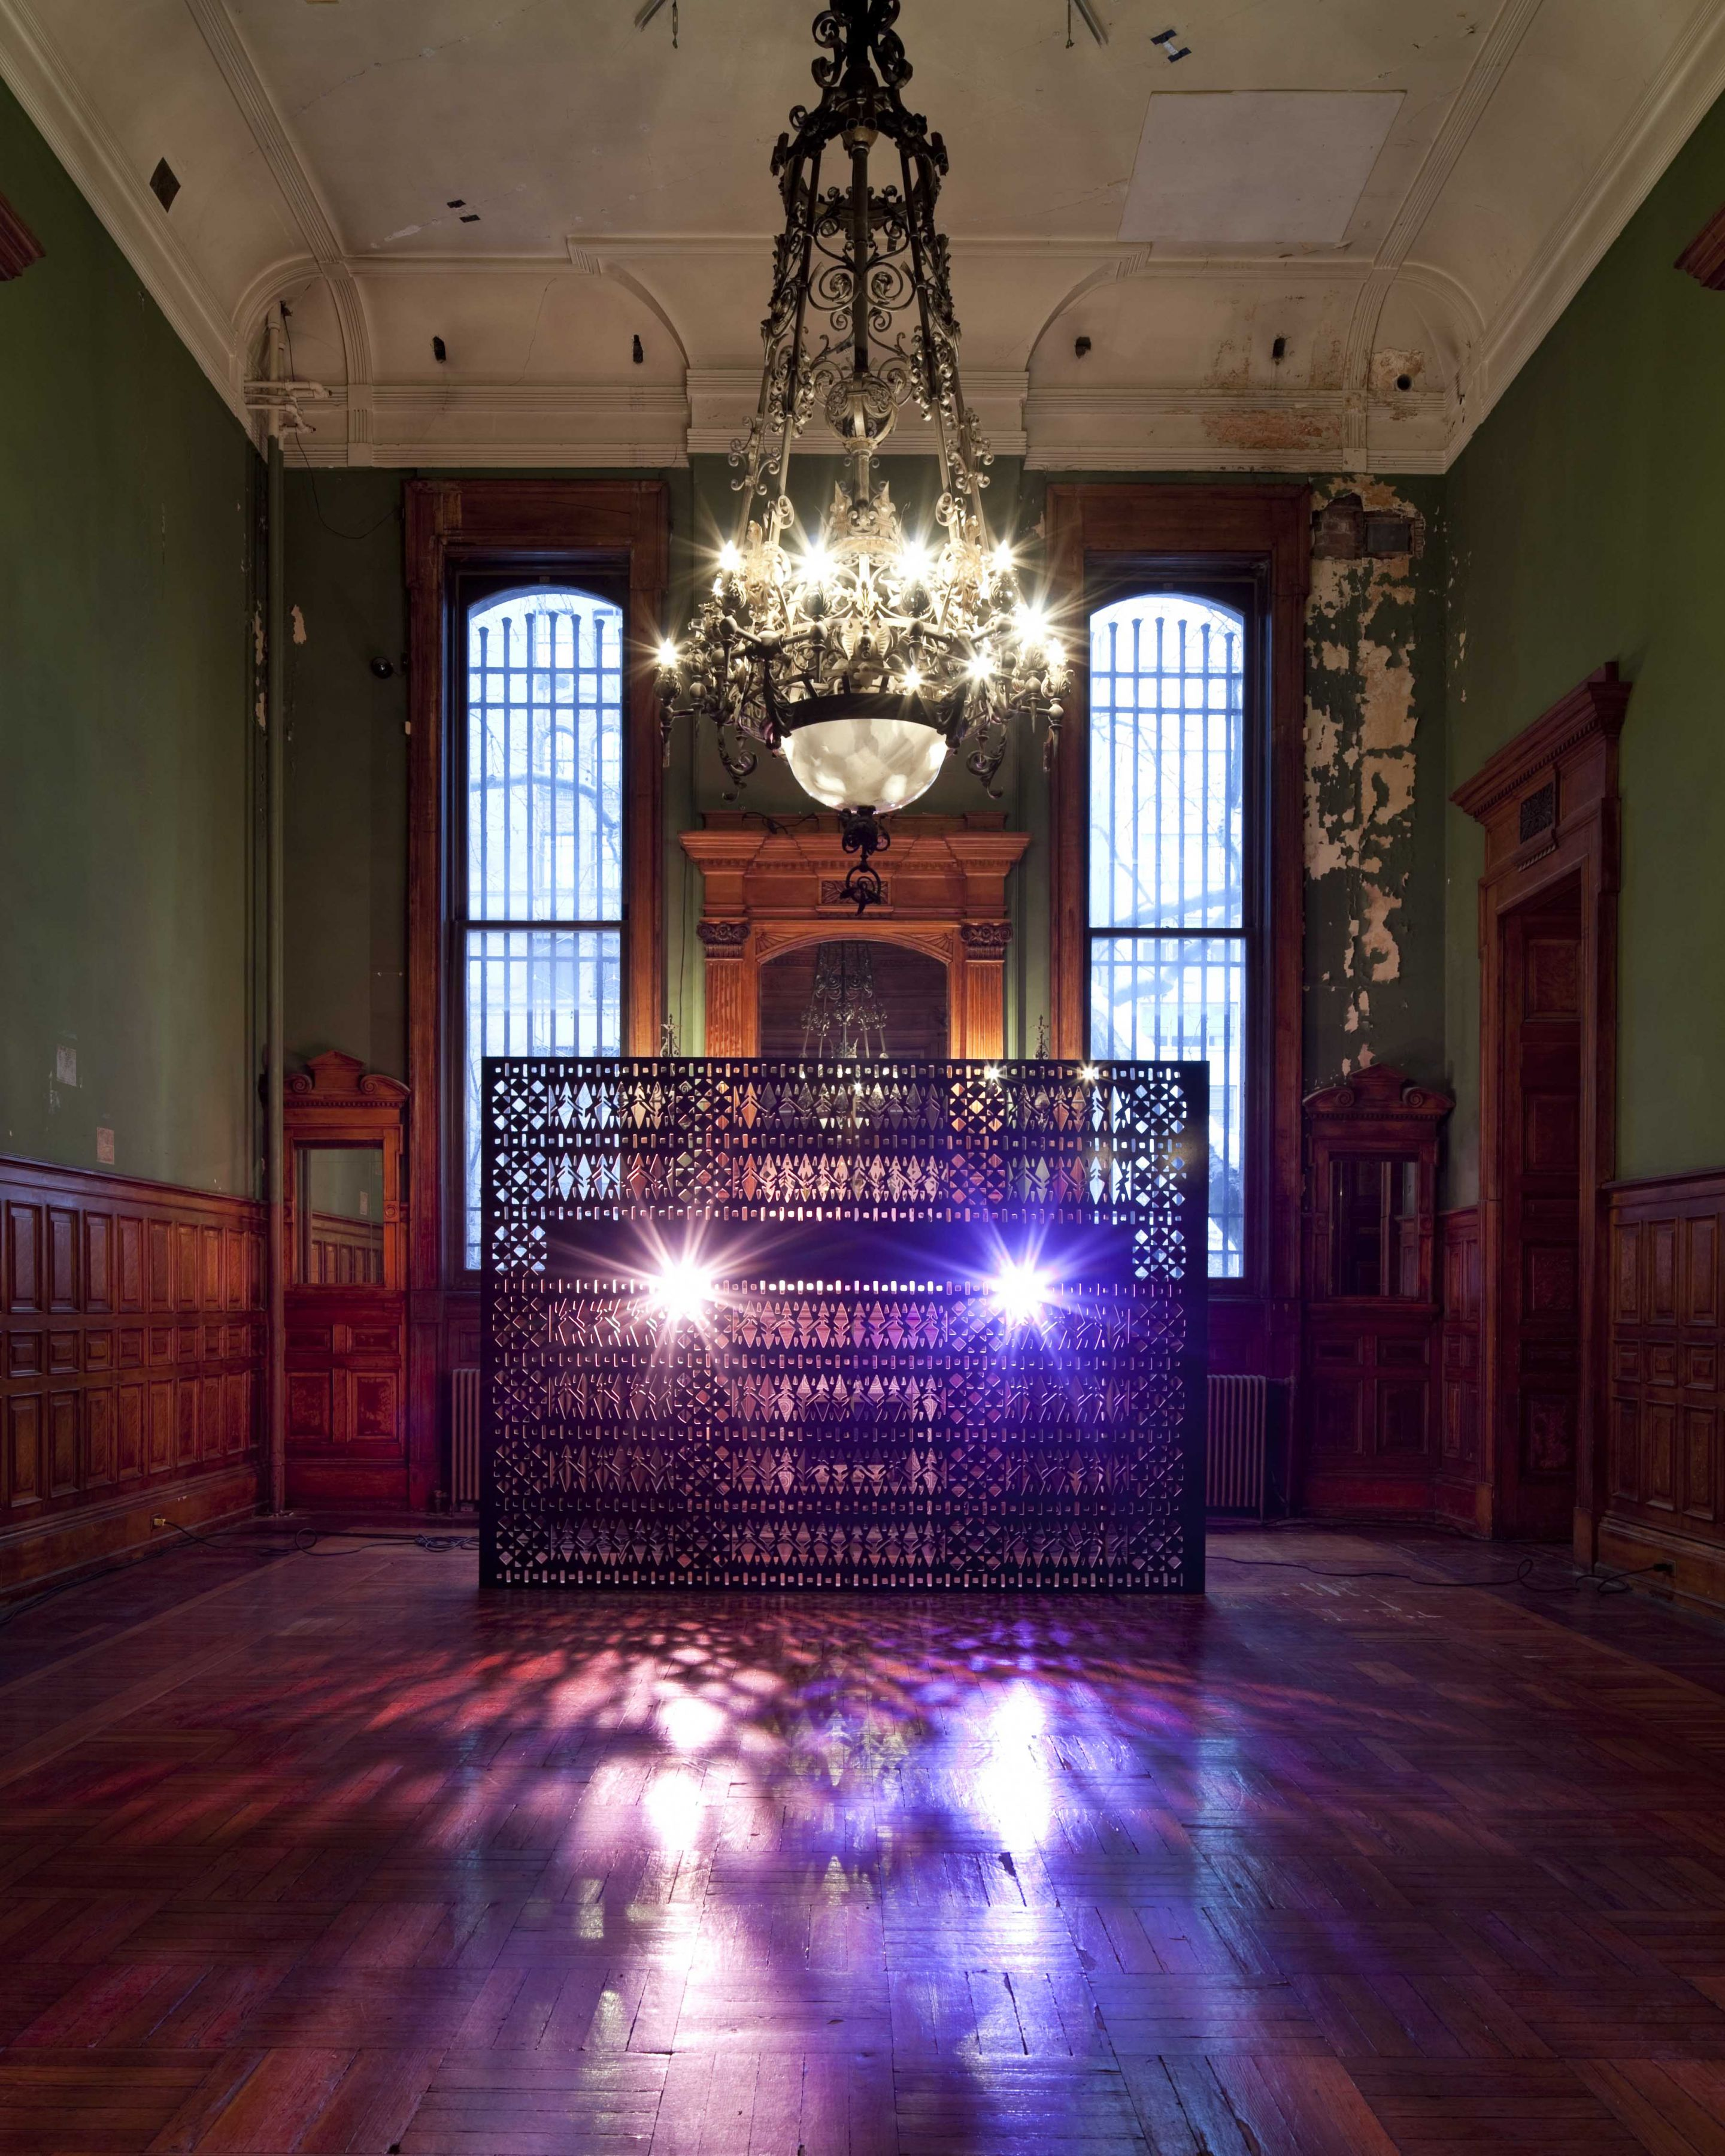 a video installation for art production fund in the park avenue armory by sue de beer